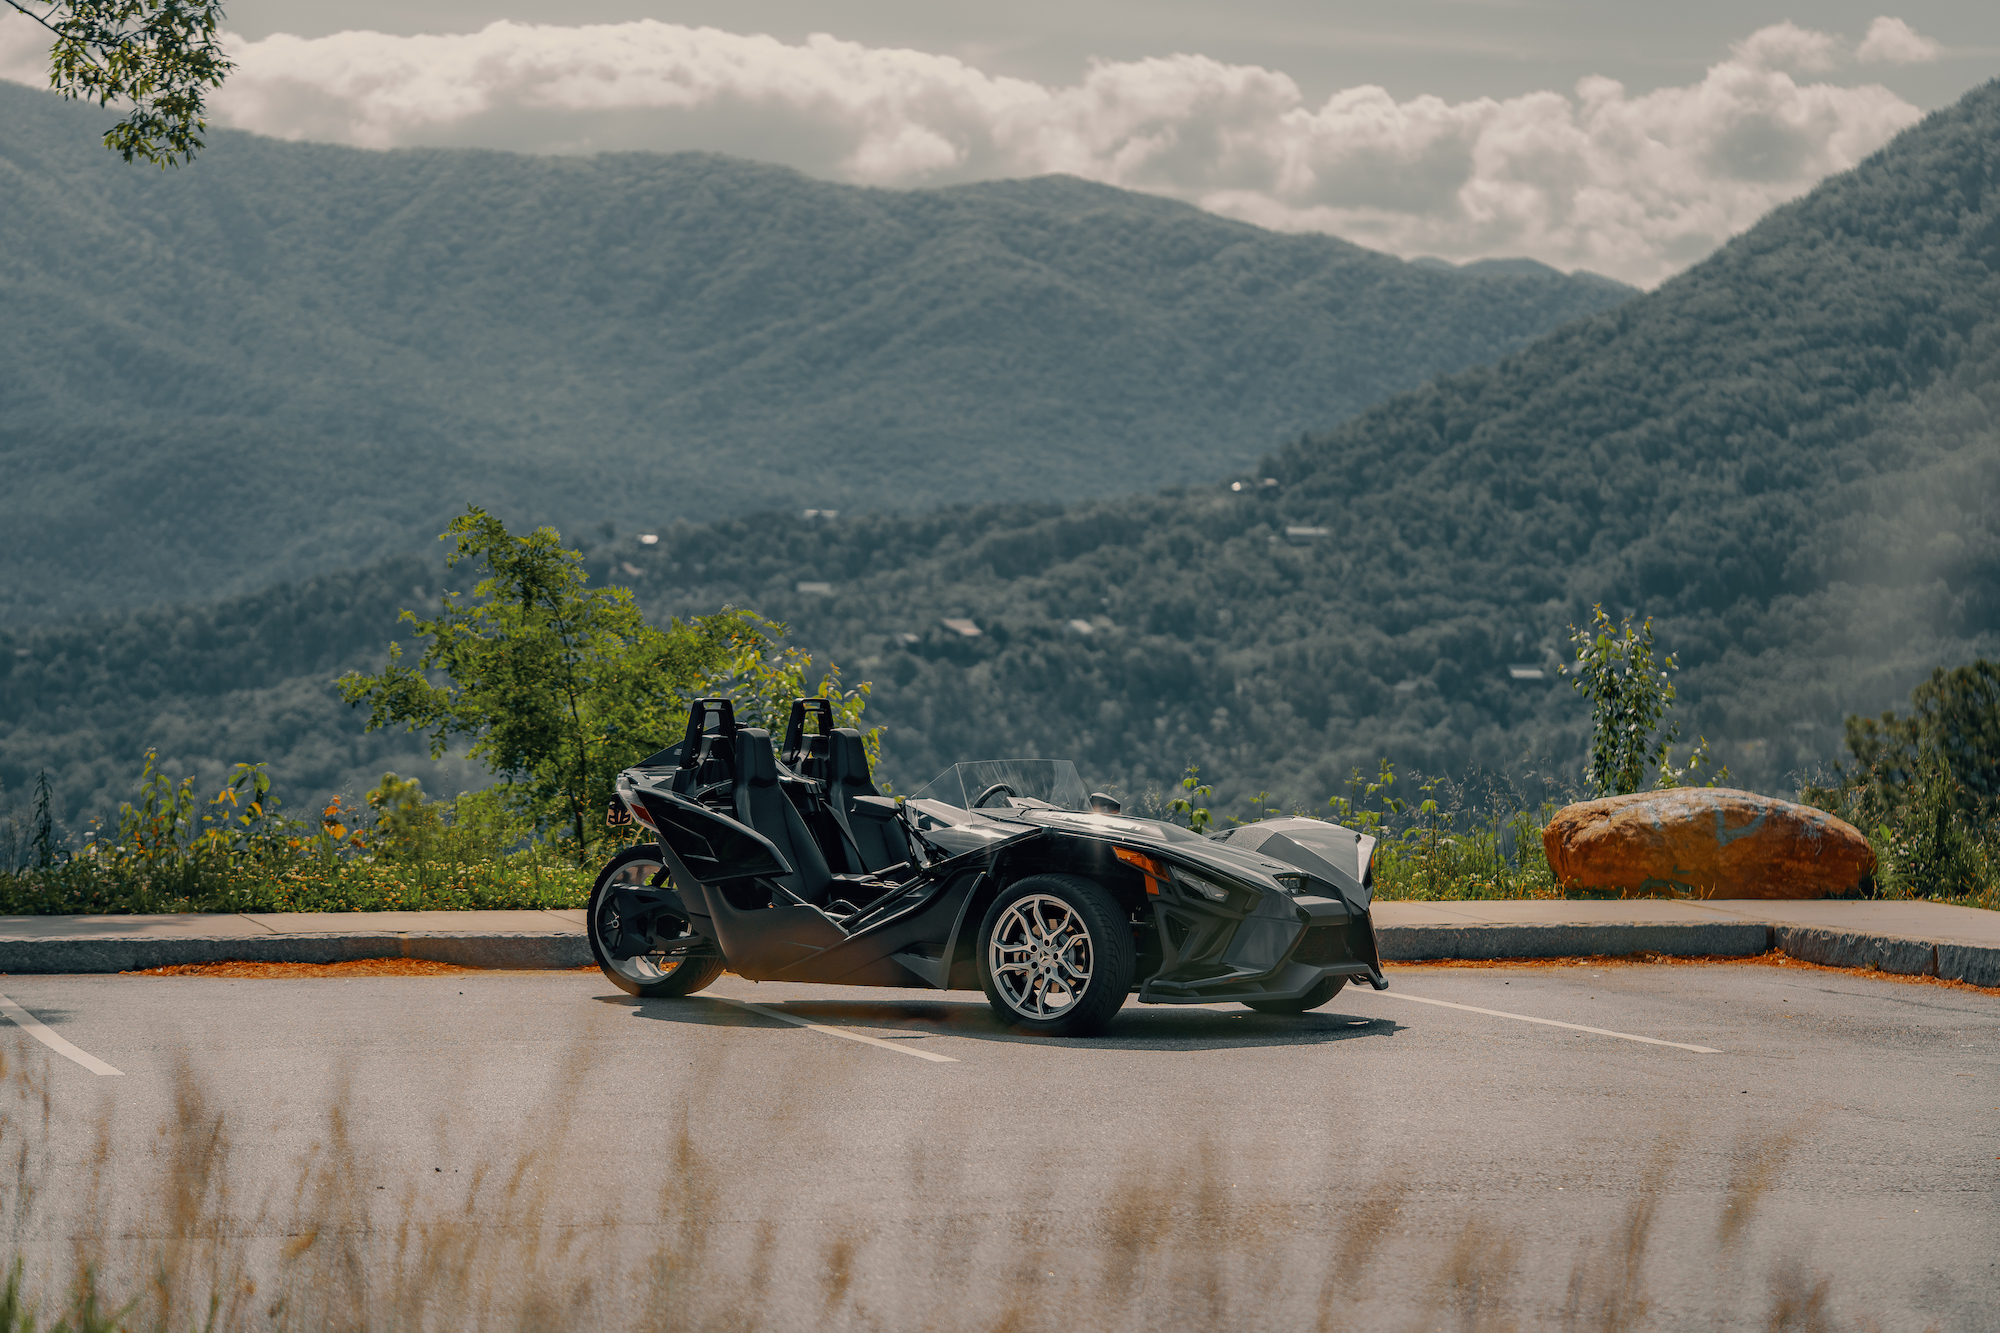 Polaris Slingshot parked with mountains in the background - Polaris Slingshots are available as rentals at the Mountain Mile Mall at Mountain Mile Adventures in Pigeon Forge, Tennessee